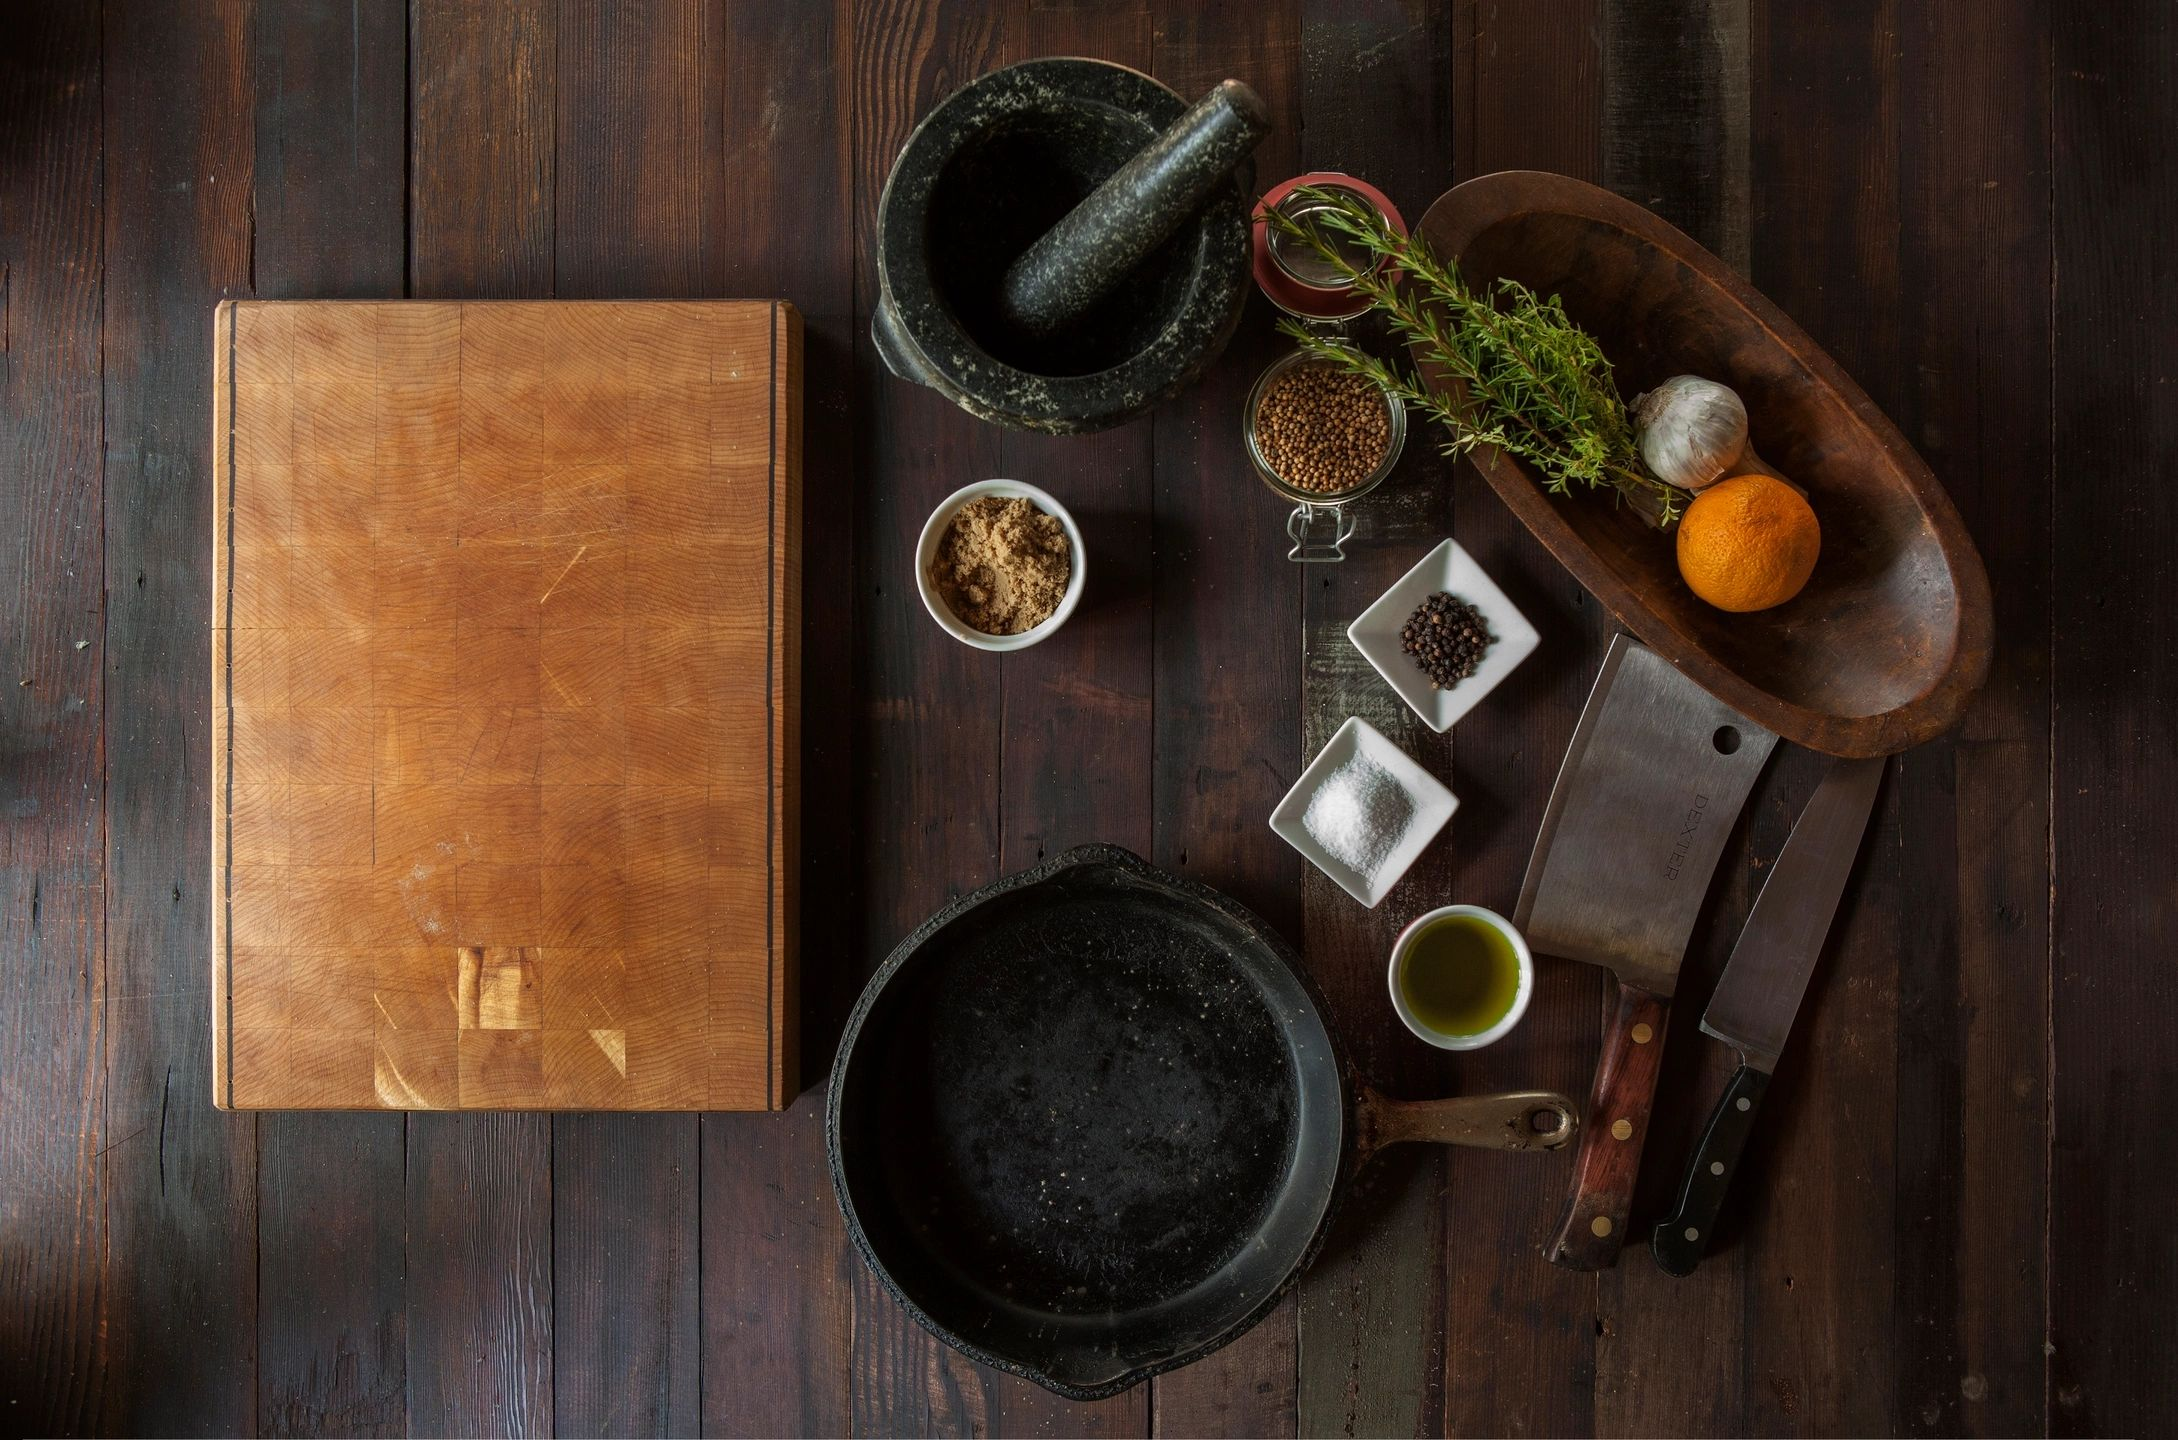 Which Is Better Plastic or Wood Cutting Boards?